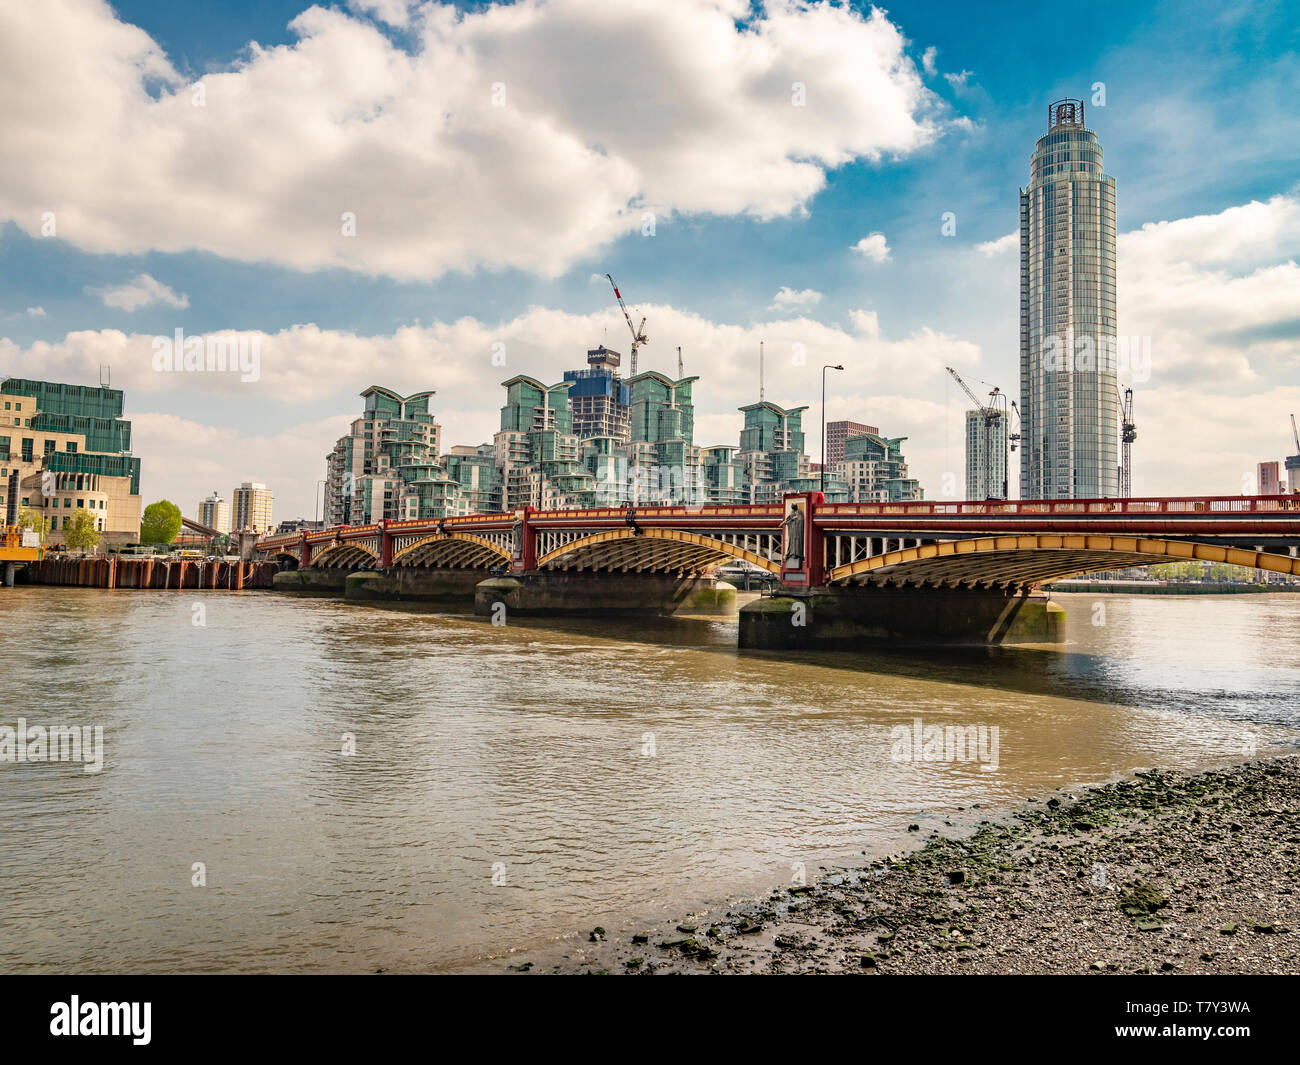 Vauxhall Bridge over the river Thames with St George Wharf Tower and development of apartments in the background, London, UK. - Stock Image